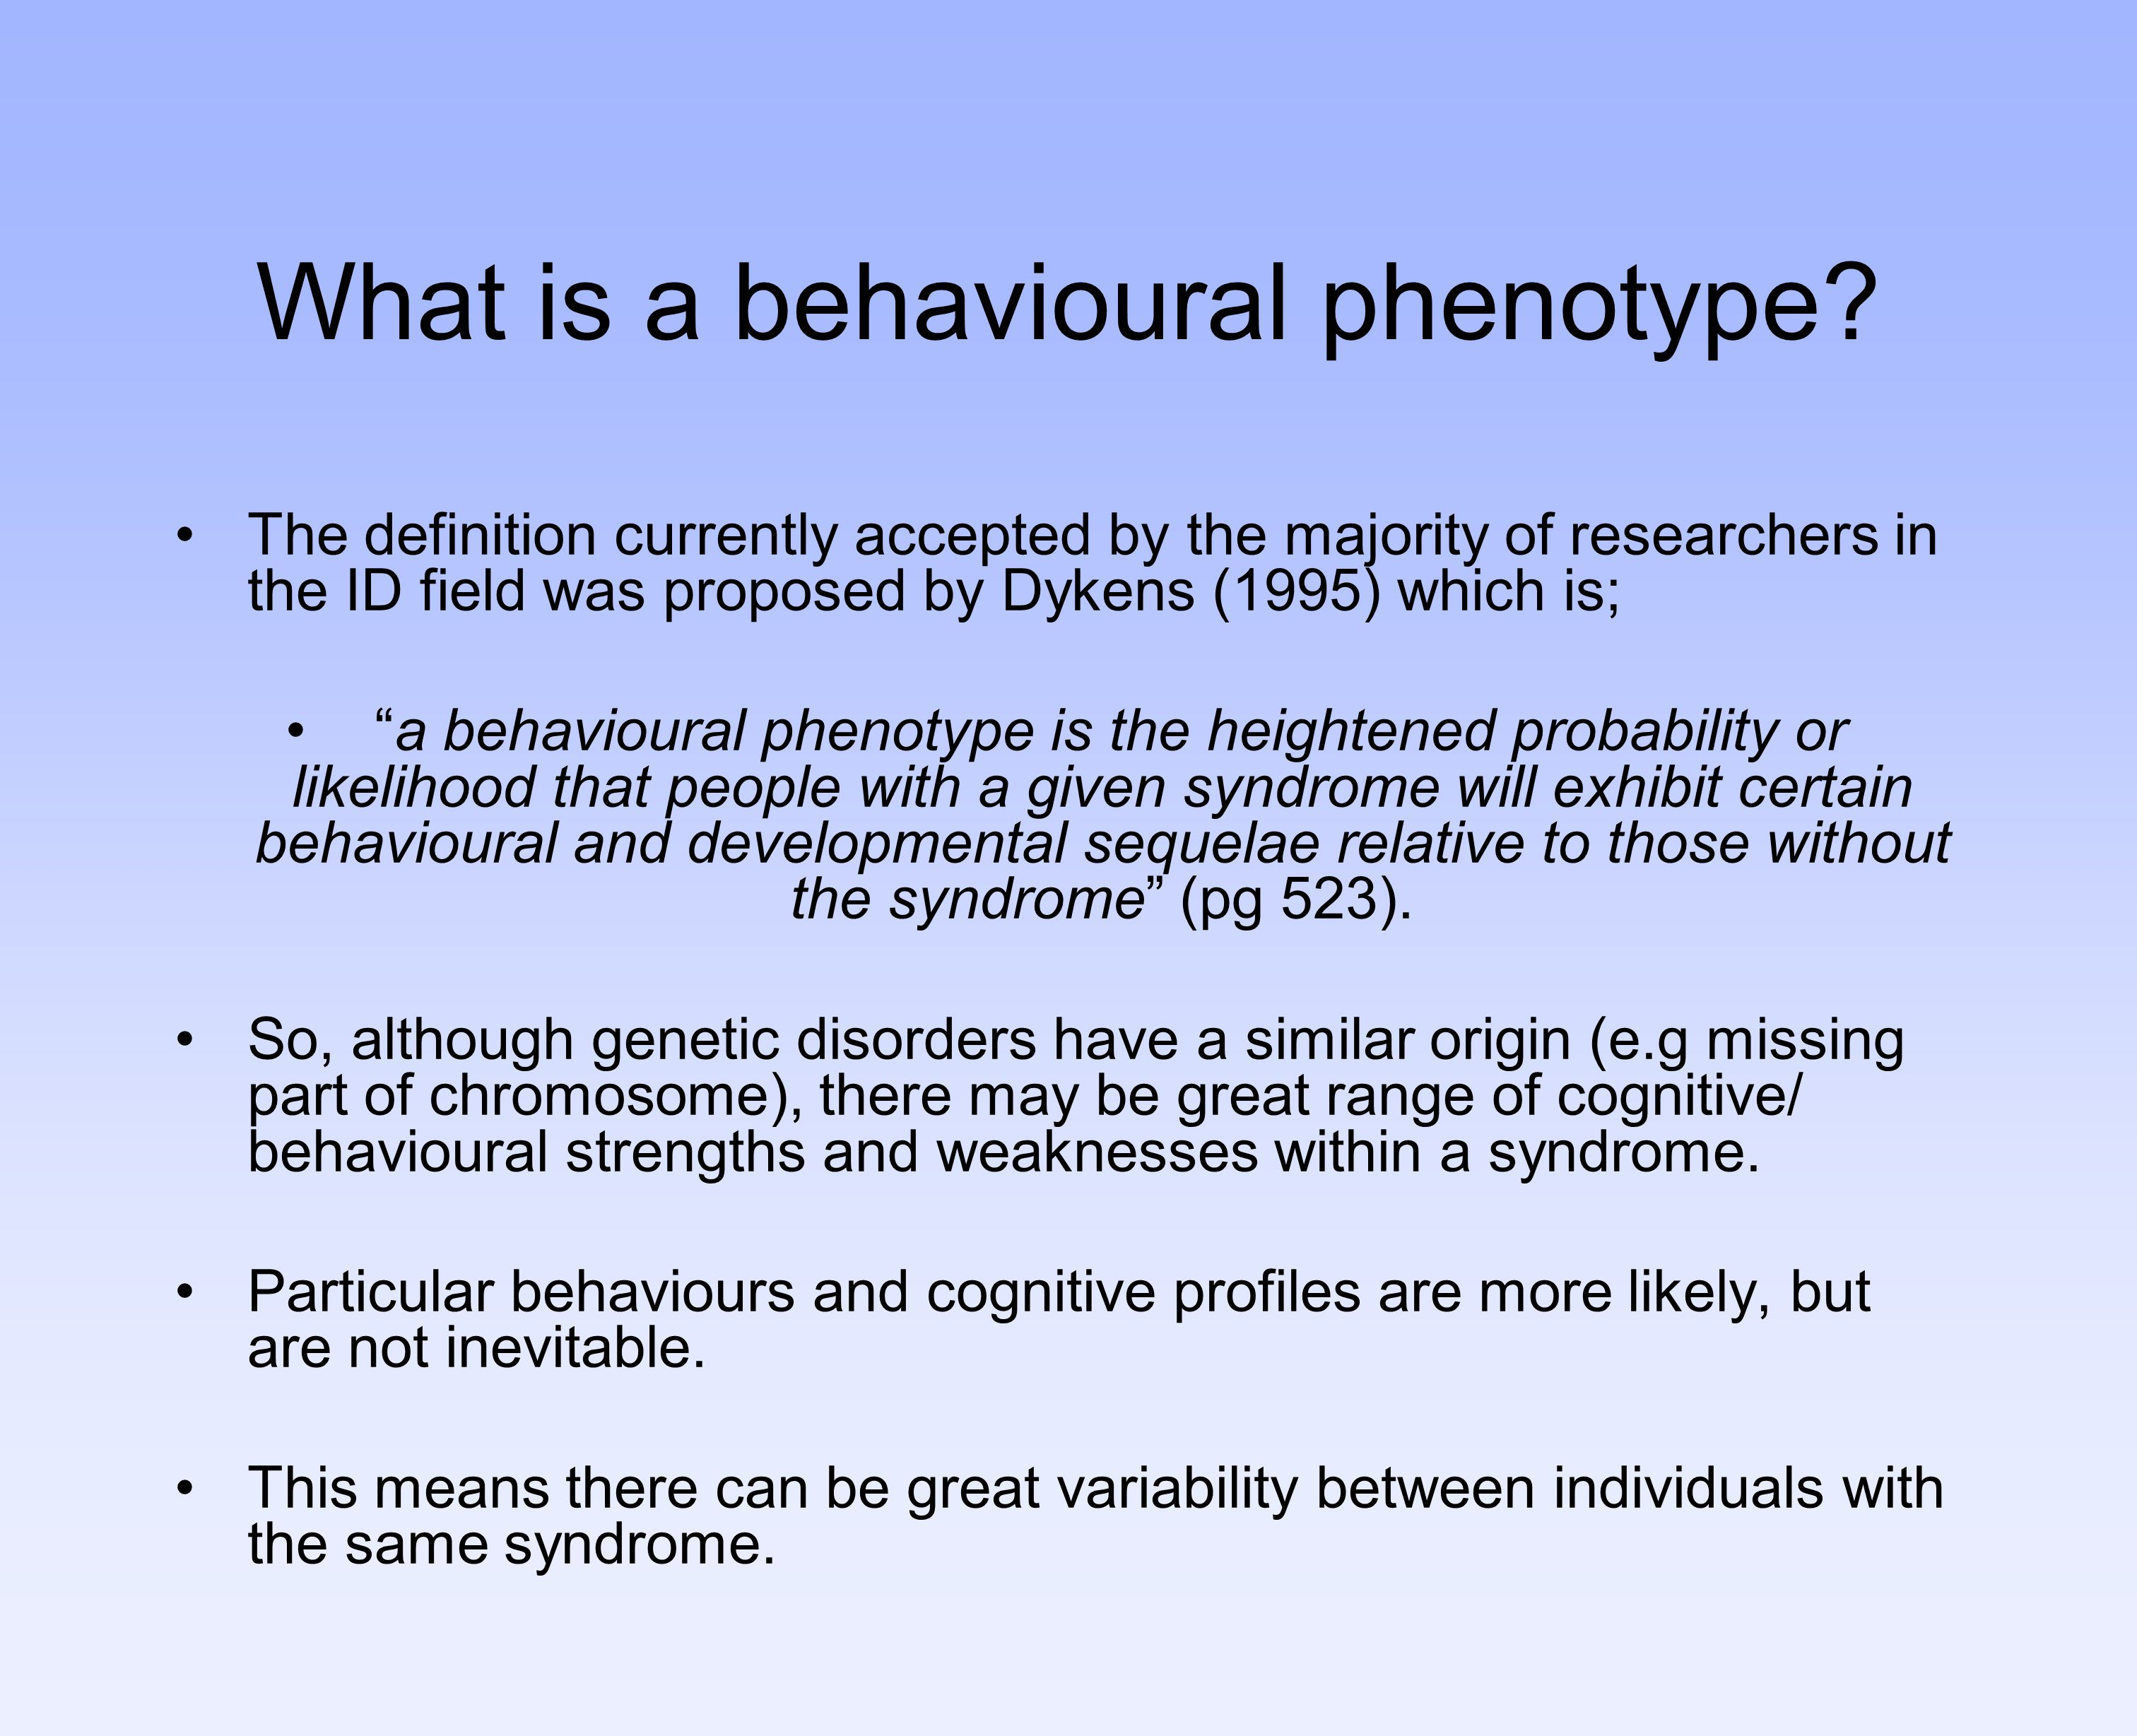 What is a behavioural phenotype? The definition currently accepted by the majority of researchers in the ID field was proposed by Dykens (1995) which